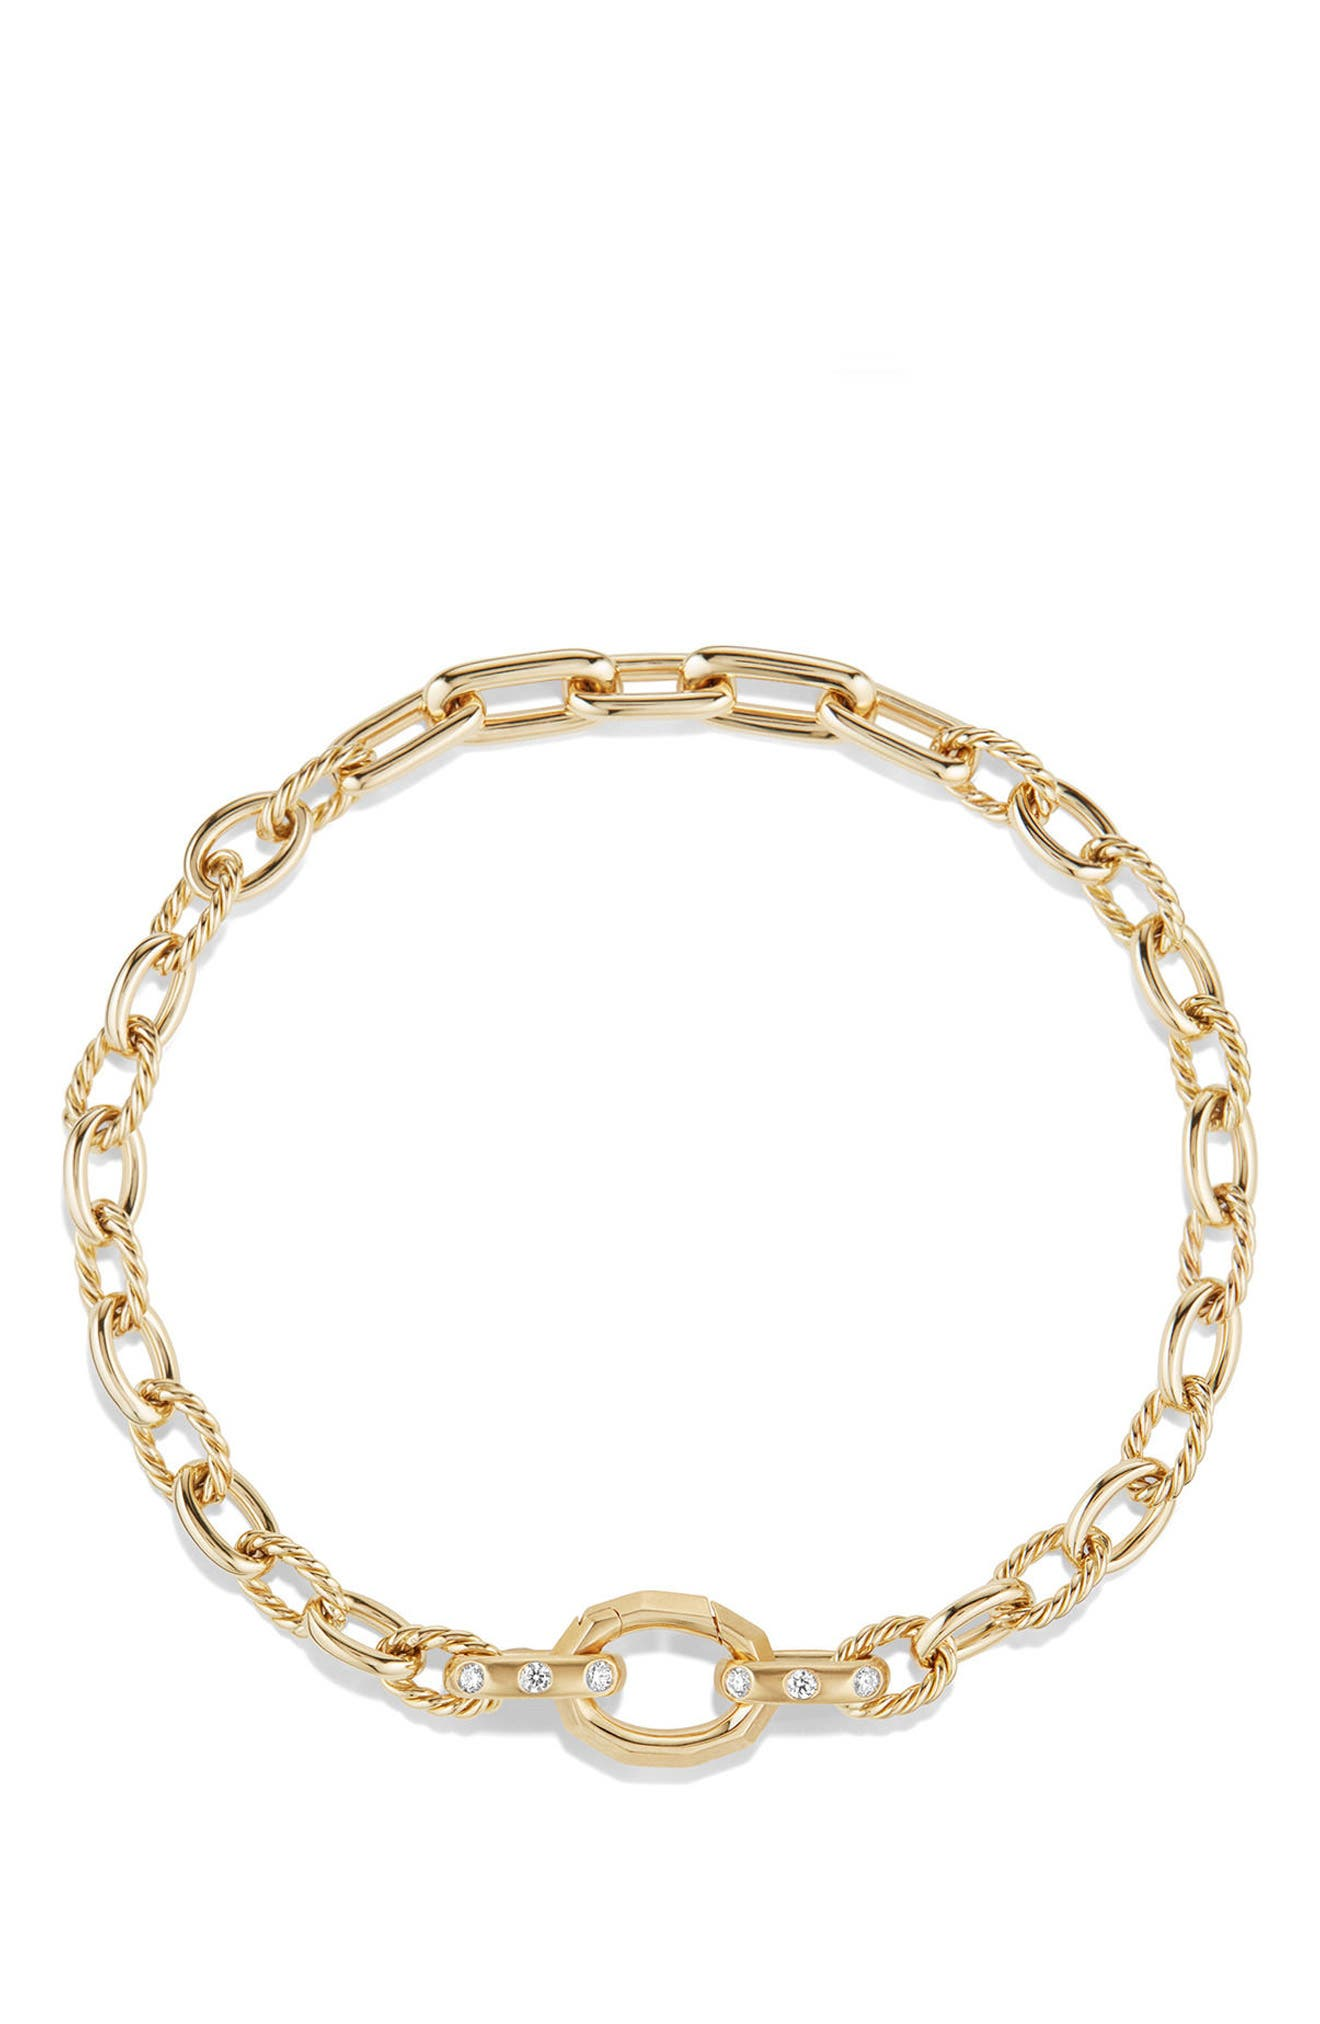 Stax Chain Bracelet with Diamonds in 18K Gold,                             Alternate thumbnail 3, color,                             YELLOW GOLD/ DIAMOND